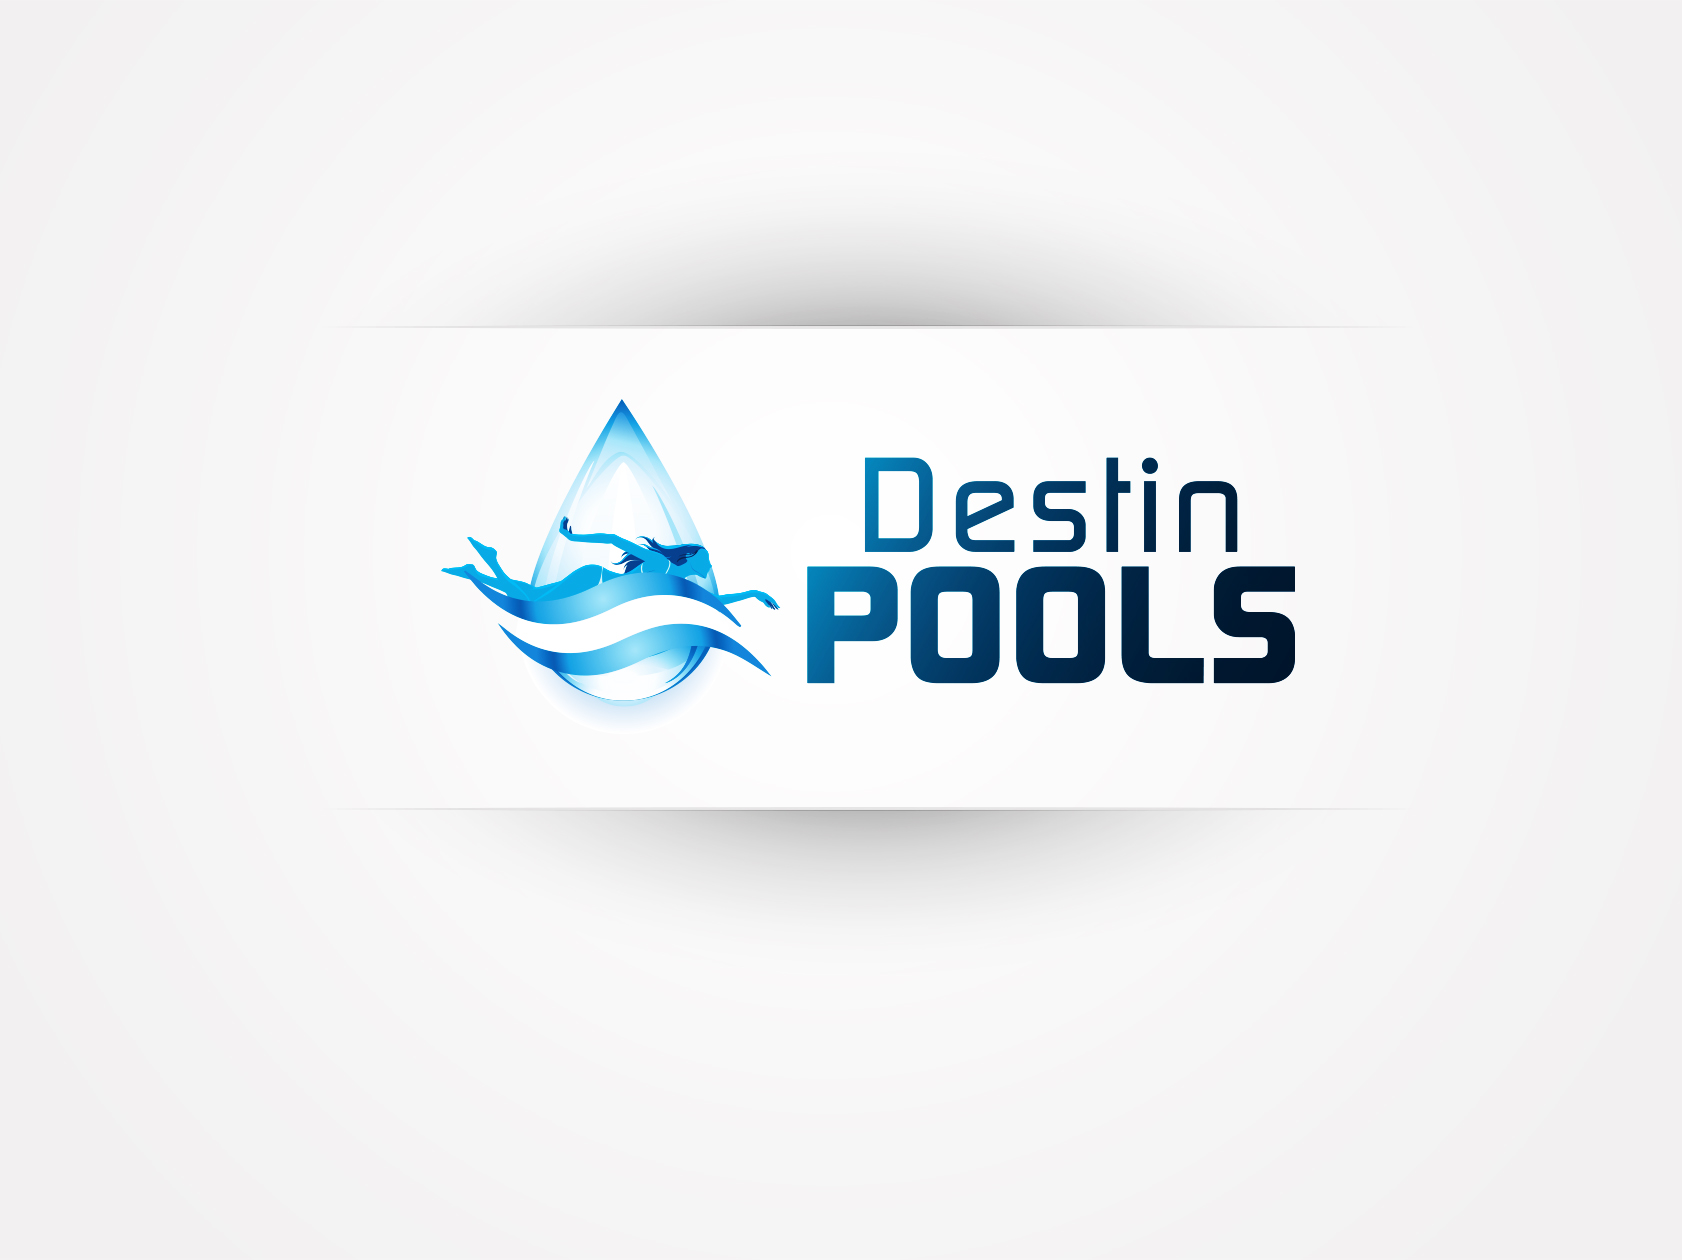 Logo design contests fun logo design for destin pools design no 109 by omegadesigns - Swimming pool logo design ...